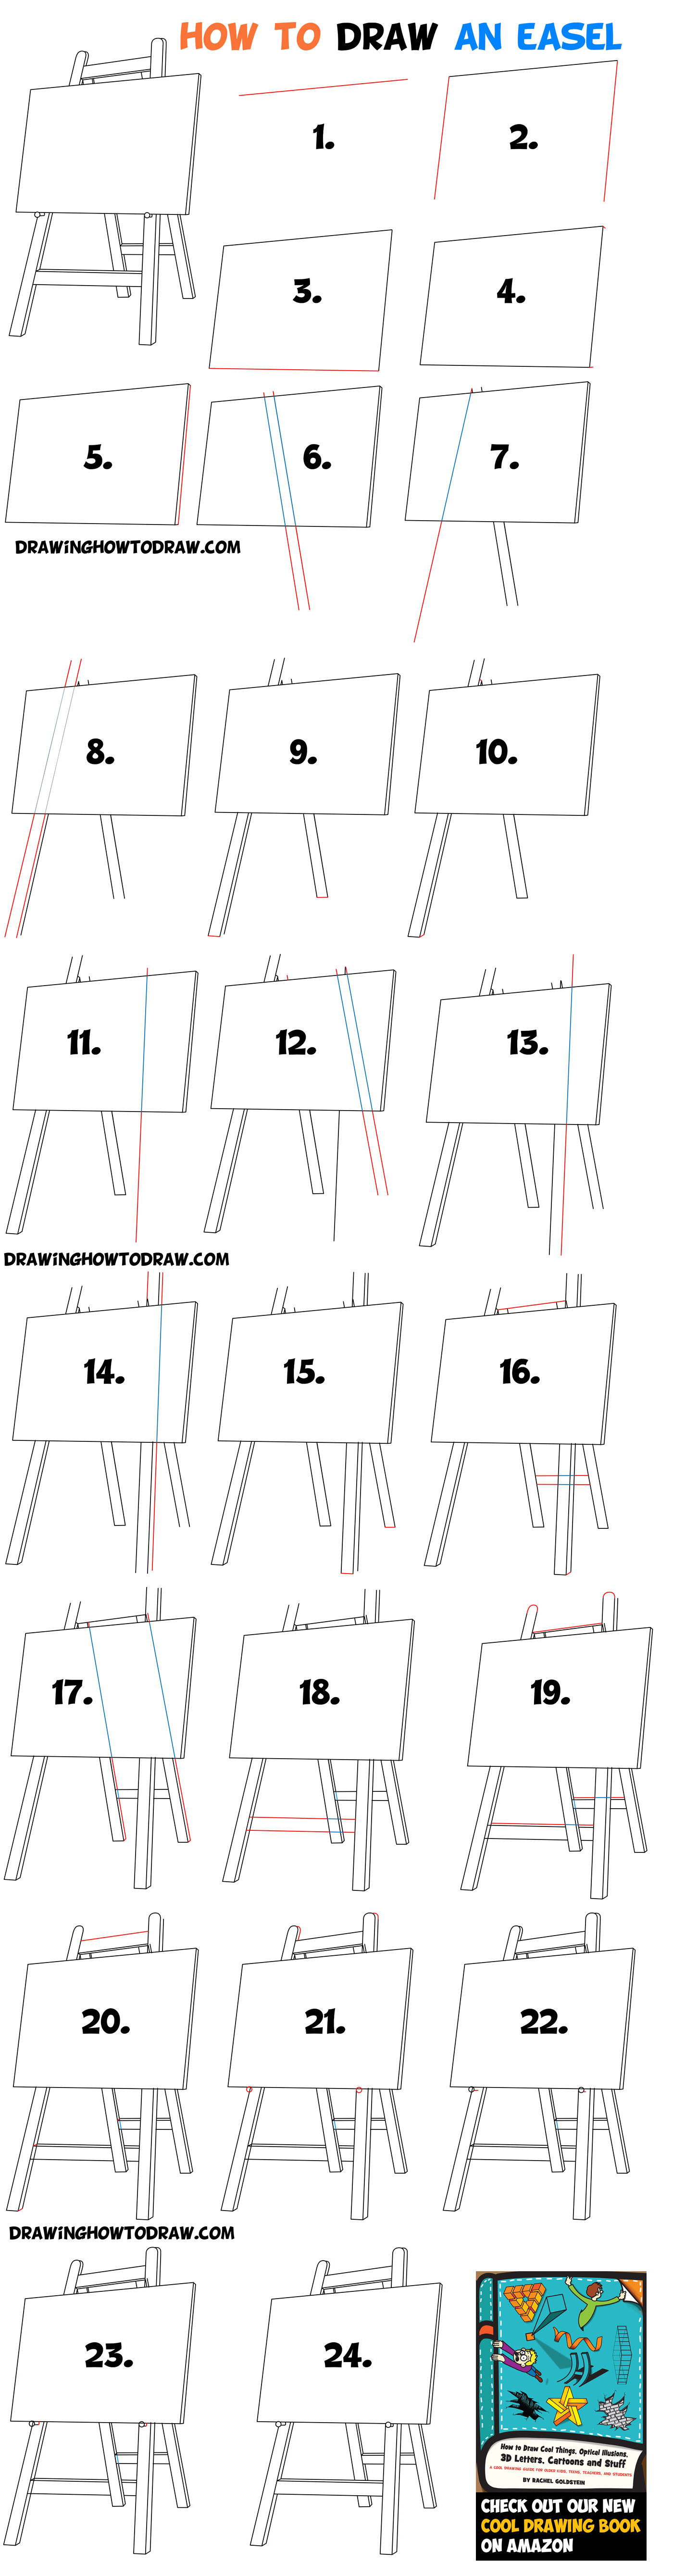 how to draw tutorials for beginners